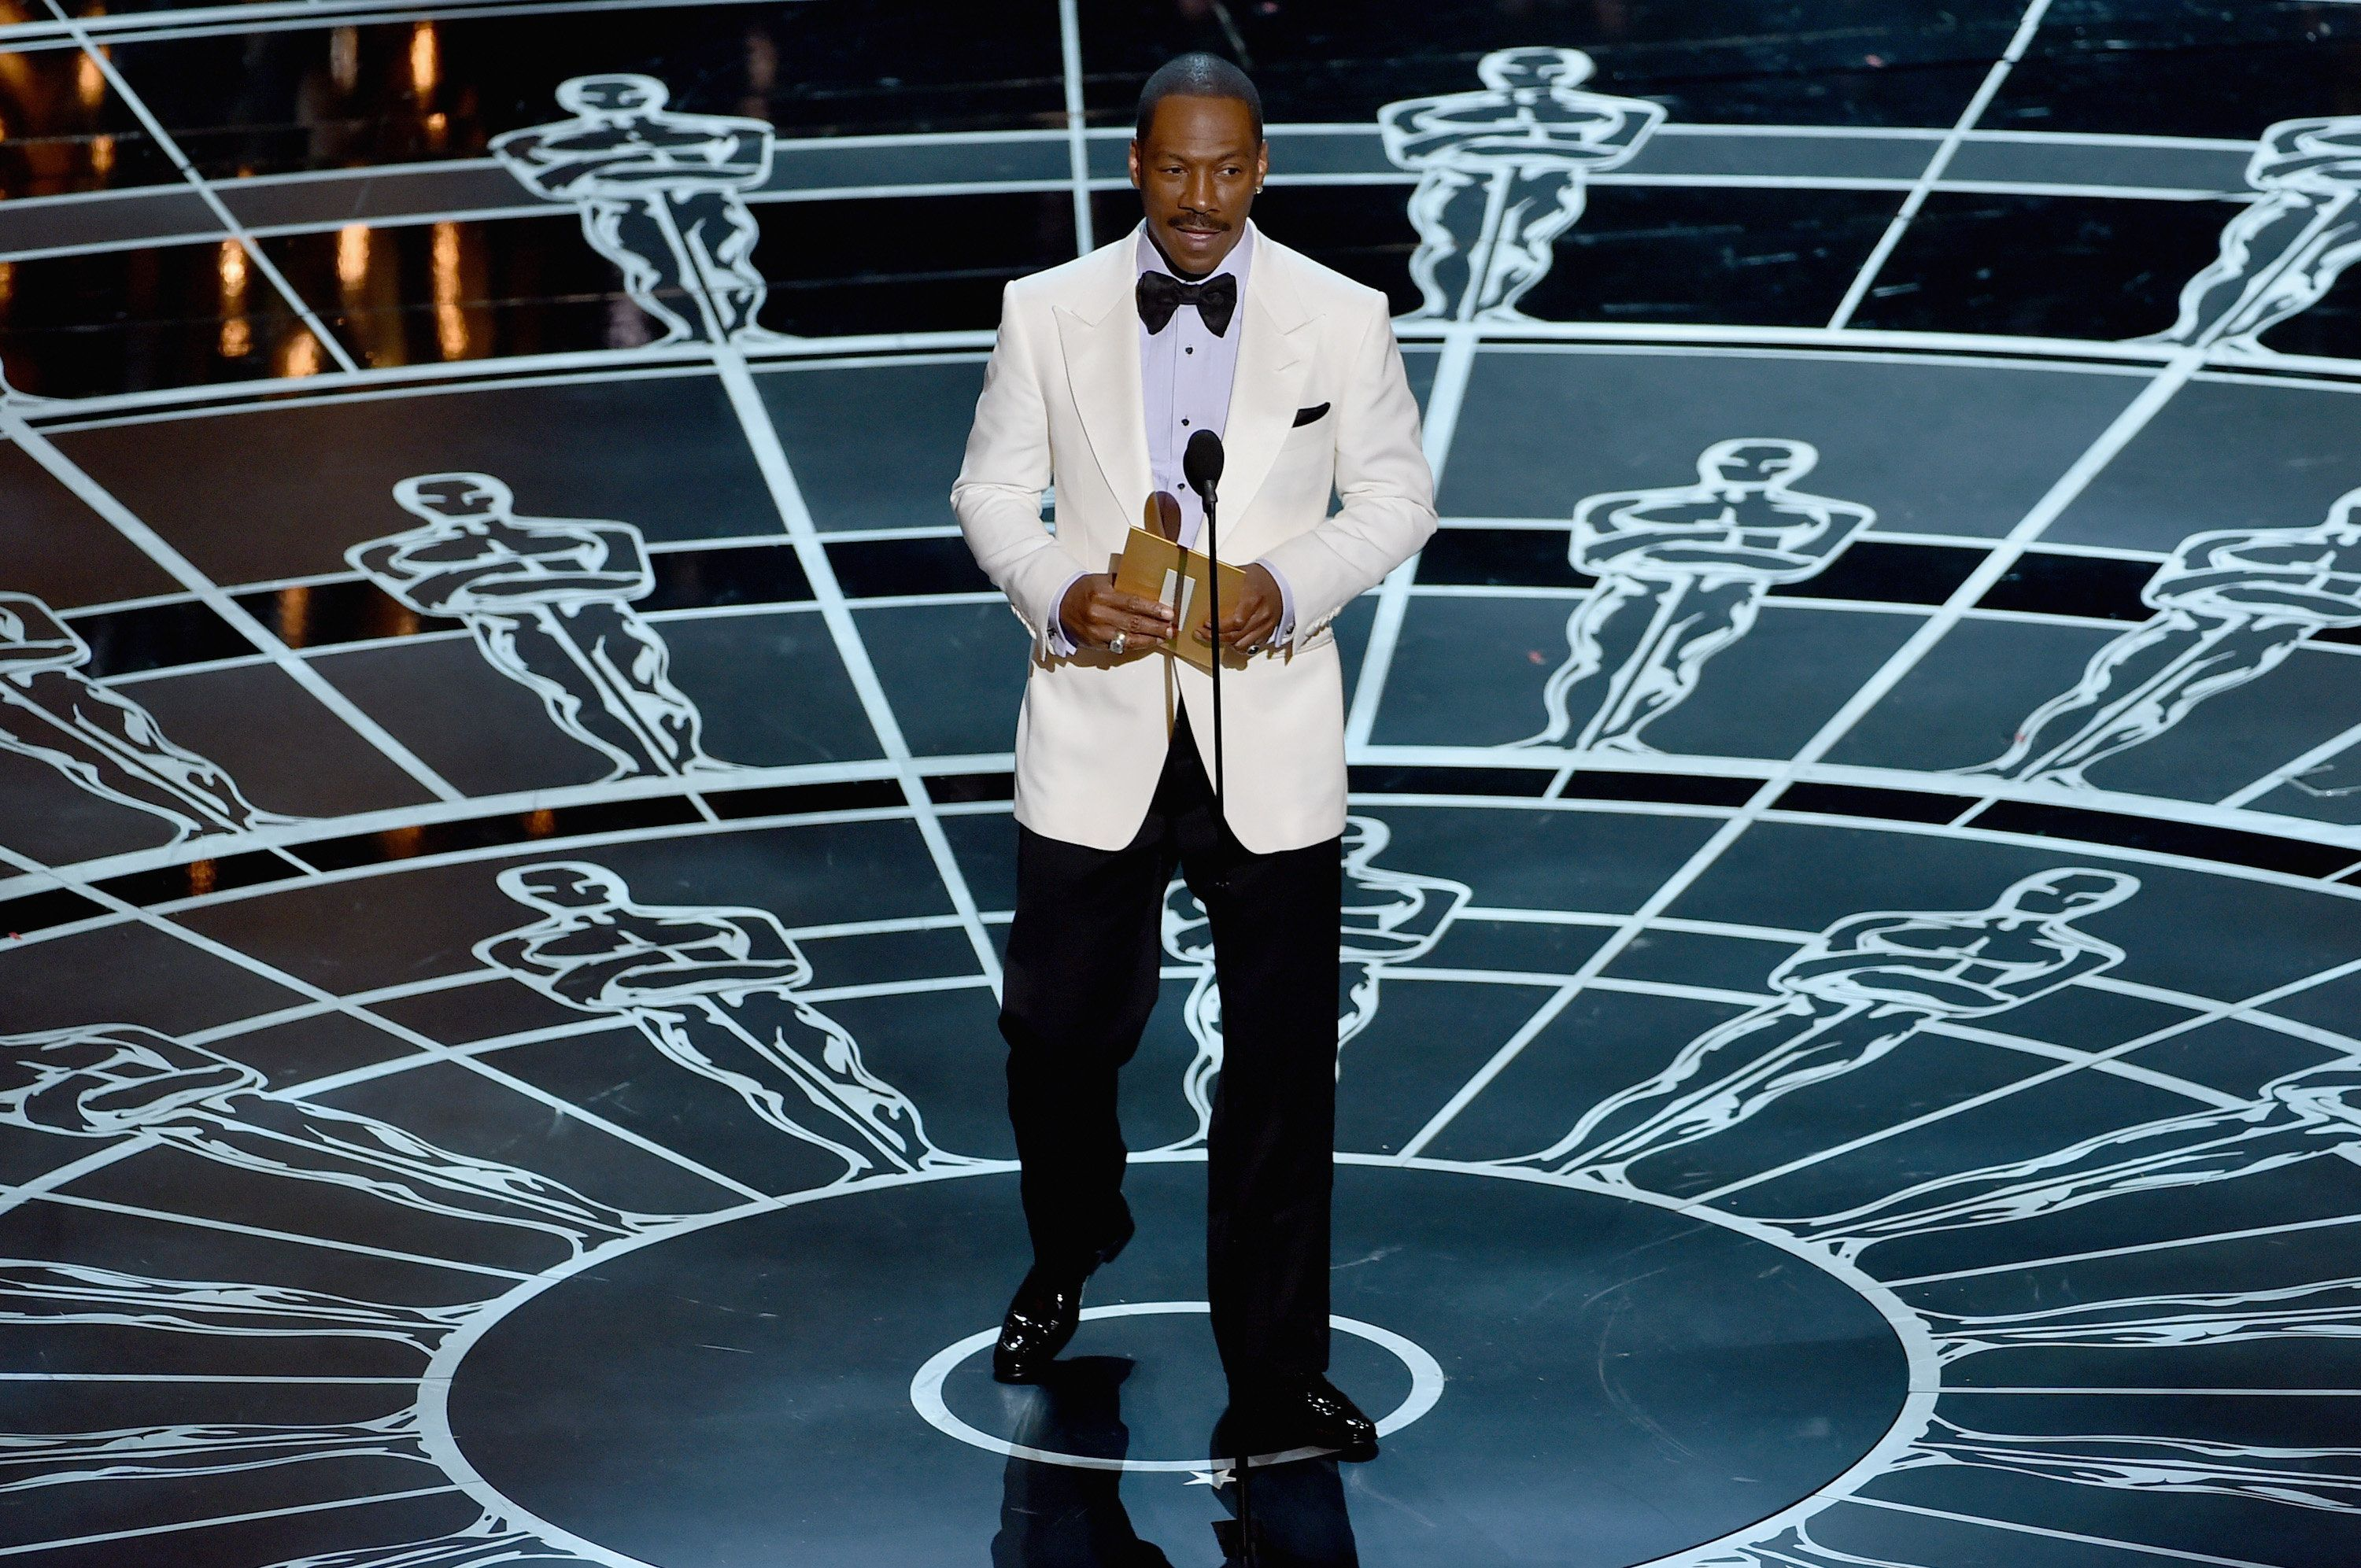 HOLLYWOOD, CA - FEBRUARY 22:  Actor Eddie Murphy opens the envelope onstage during the 87th Annual Academy Awards at Dolby Theatre on February 22, 2015 in Hollywood, California.  (Photo by Kevin Winter/Getty Images)